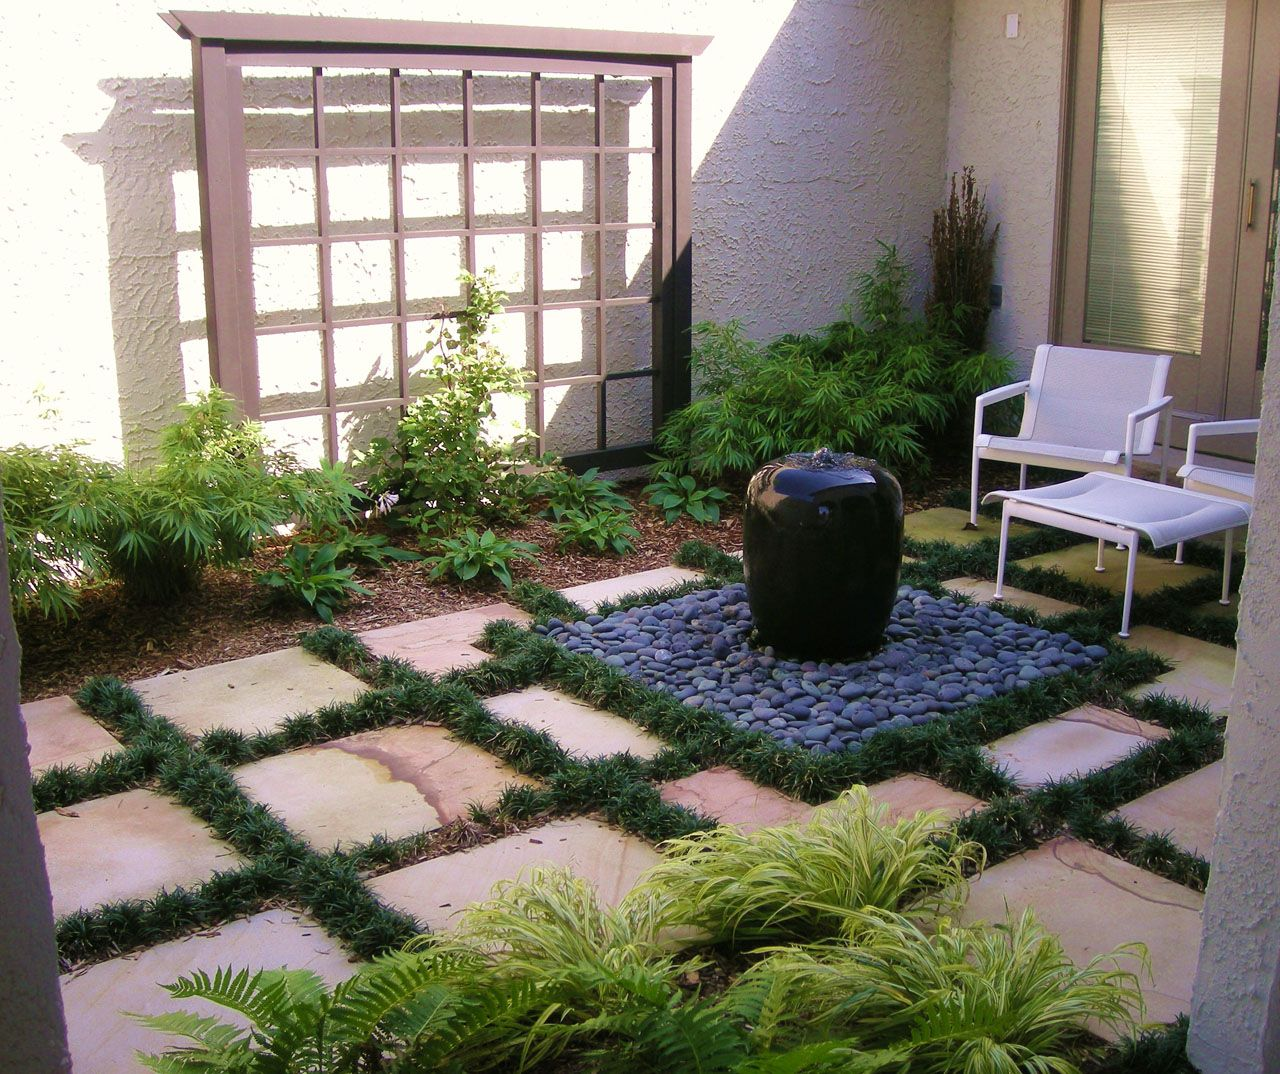 Water features nj nj outdoor water feature waterfall nj for Courtyard garden ideas